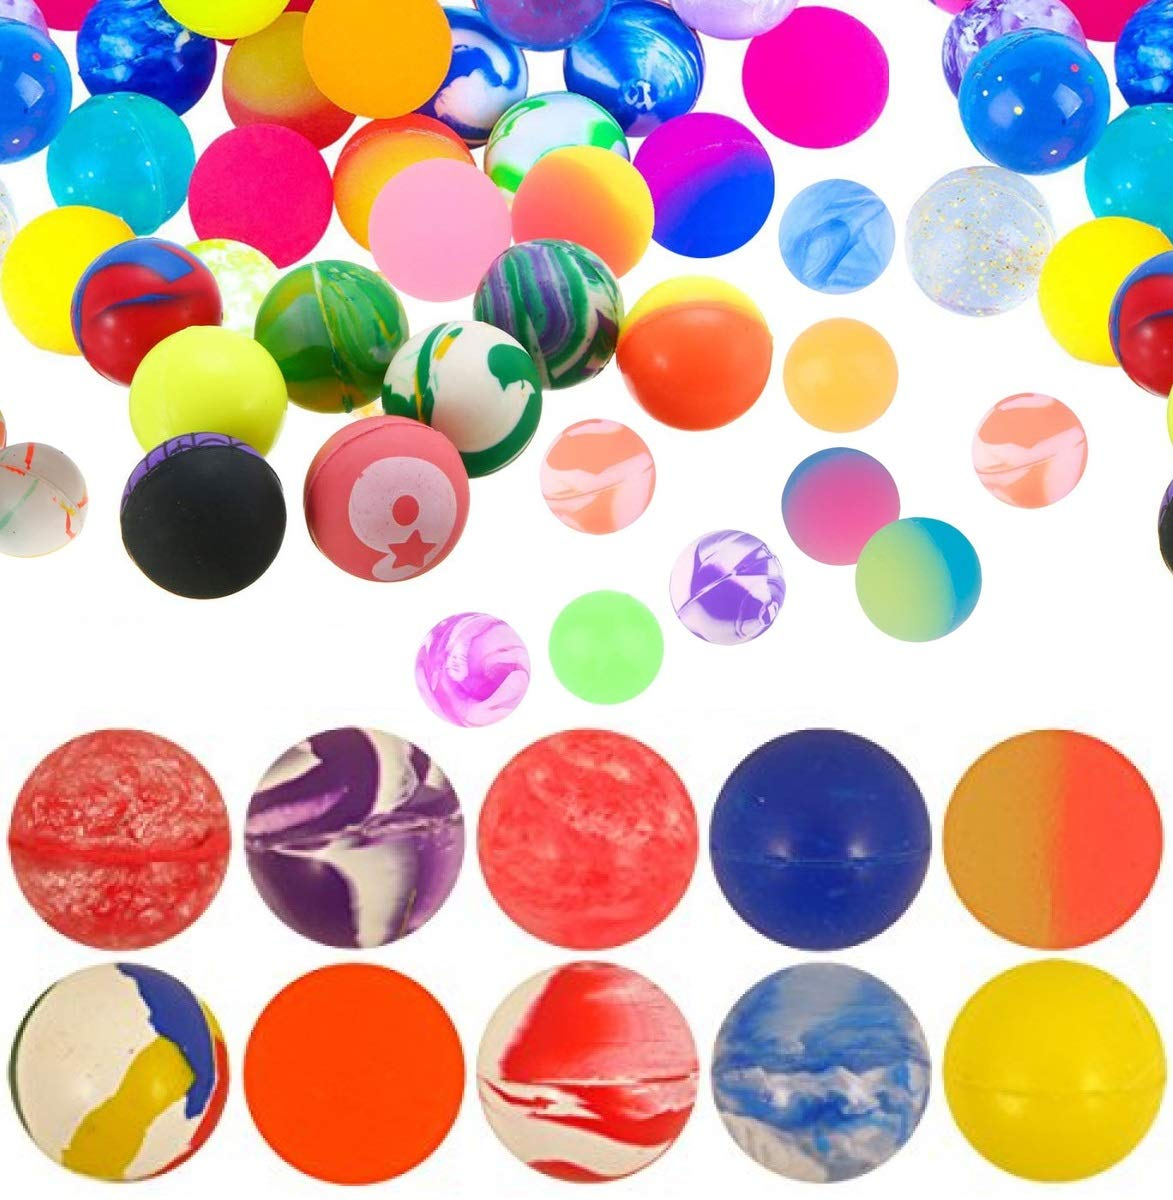 Bouncy Jet Balls Ball Party Children Toy Loot Bags Fillers Kids Gift colours